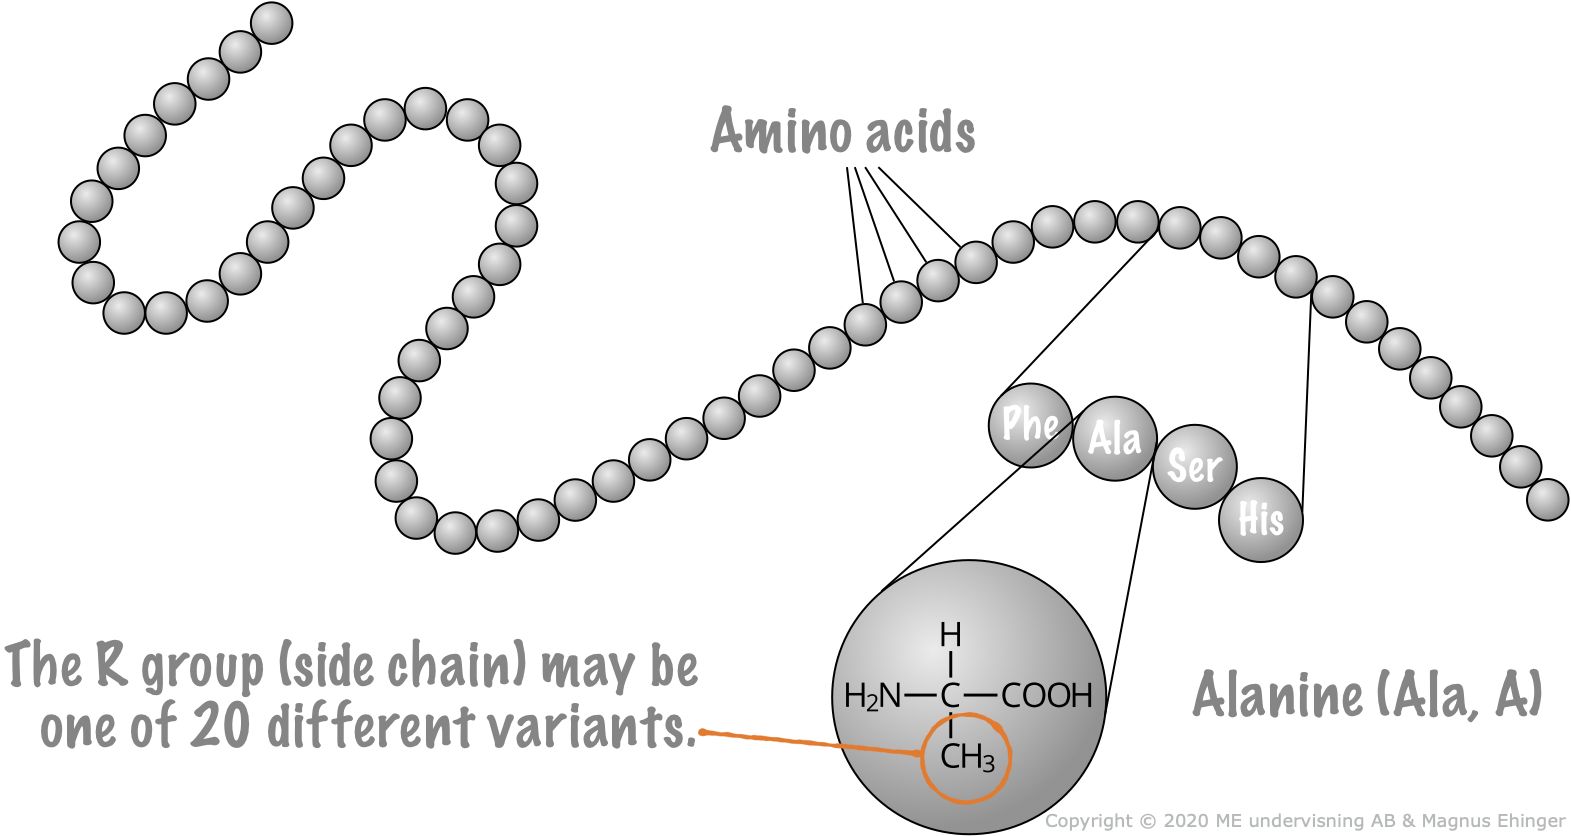 Proteins are long chains of amino acids linked together.